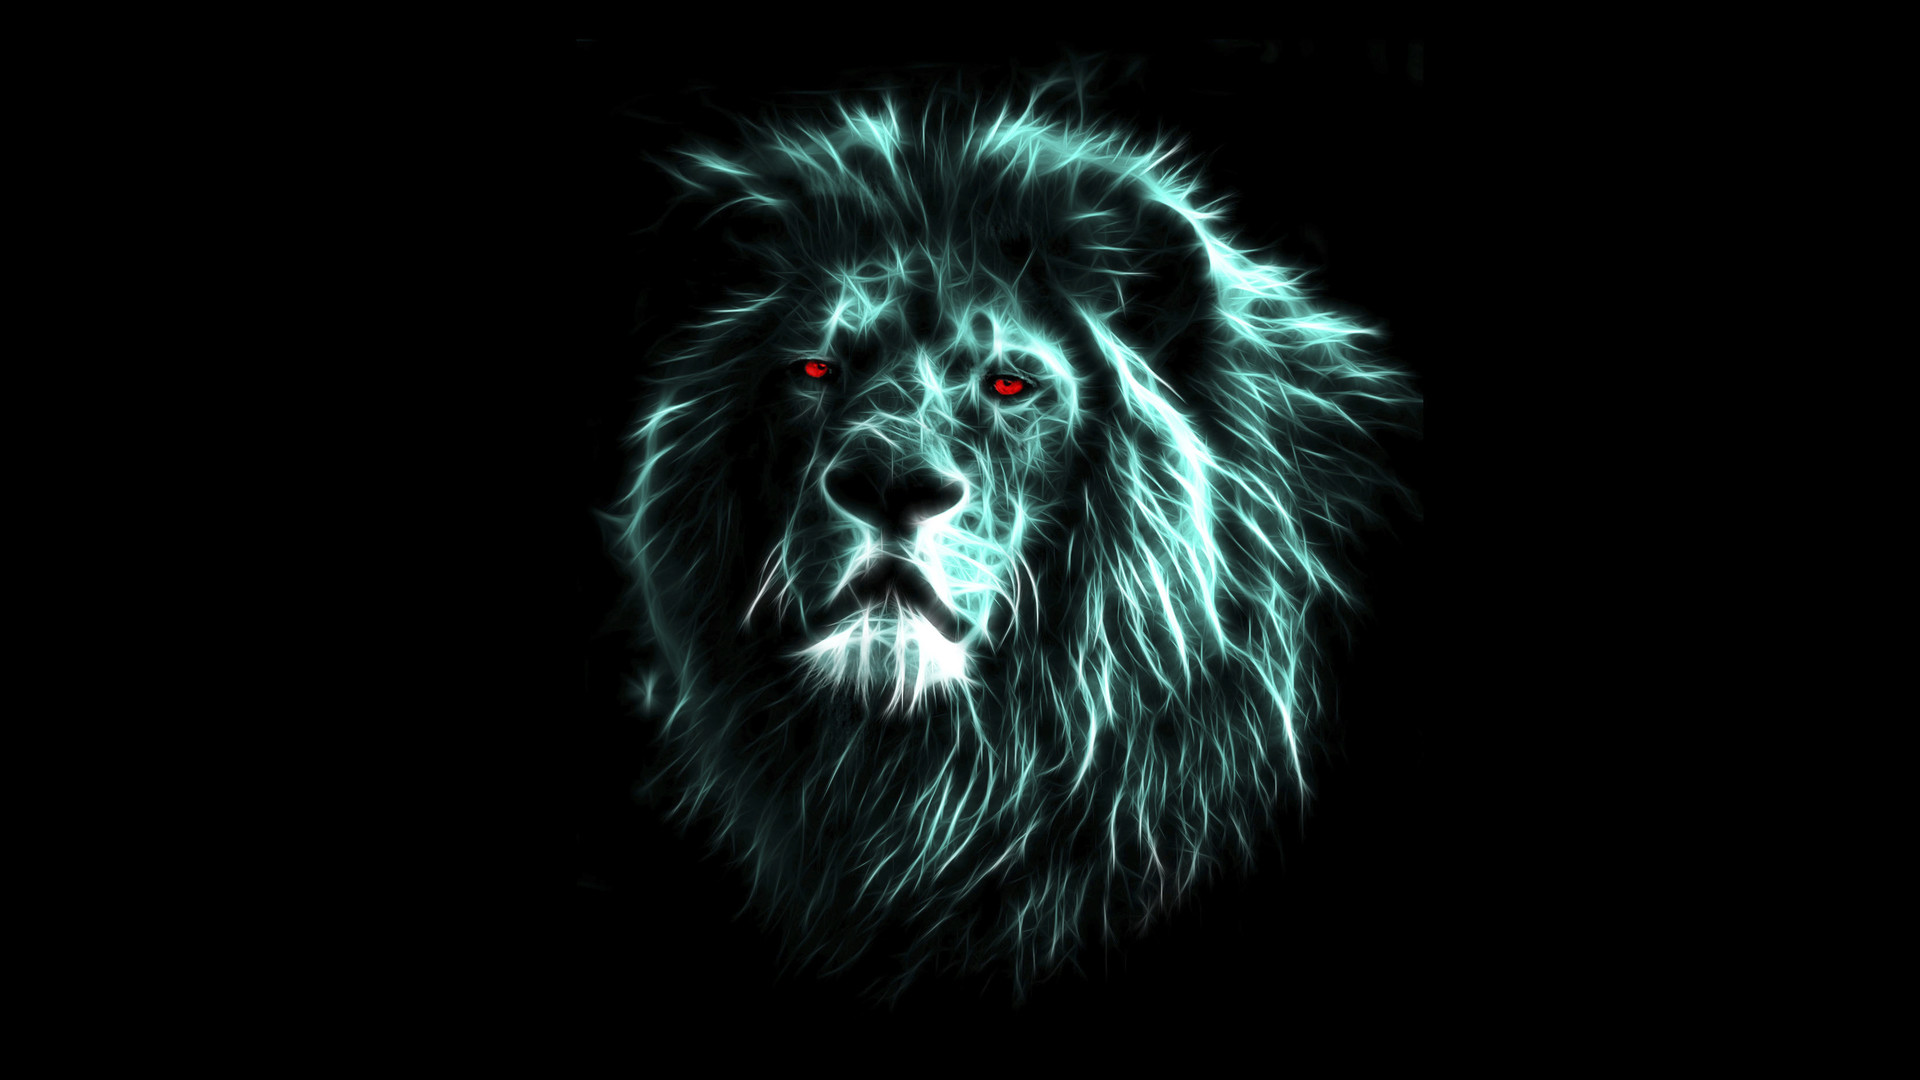 free download lion wallpapers 1920x1080 for hd WTG200414657